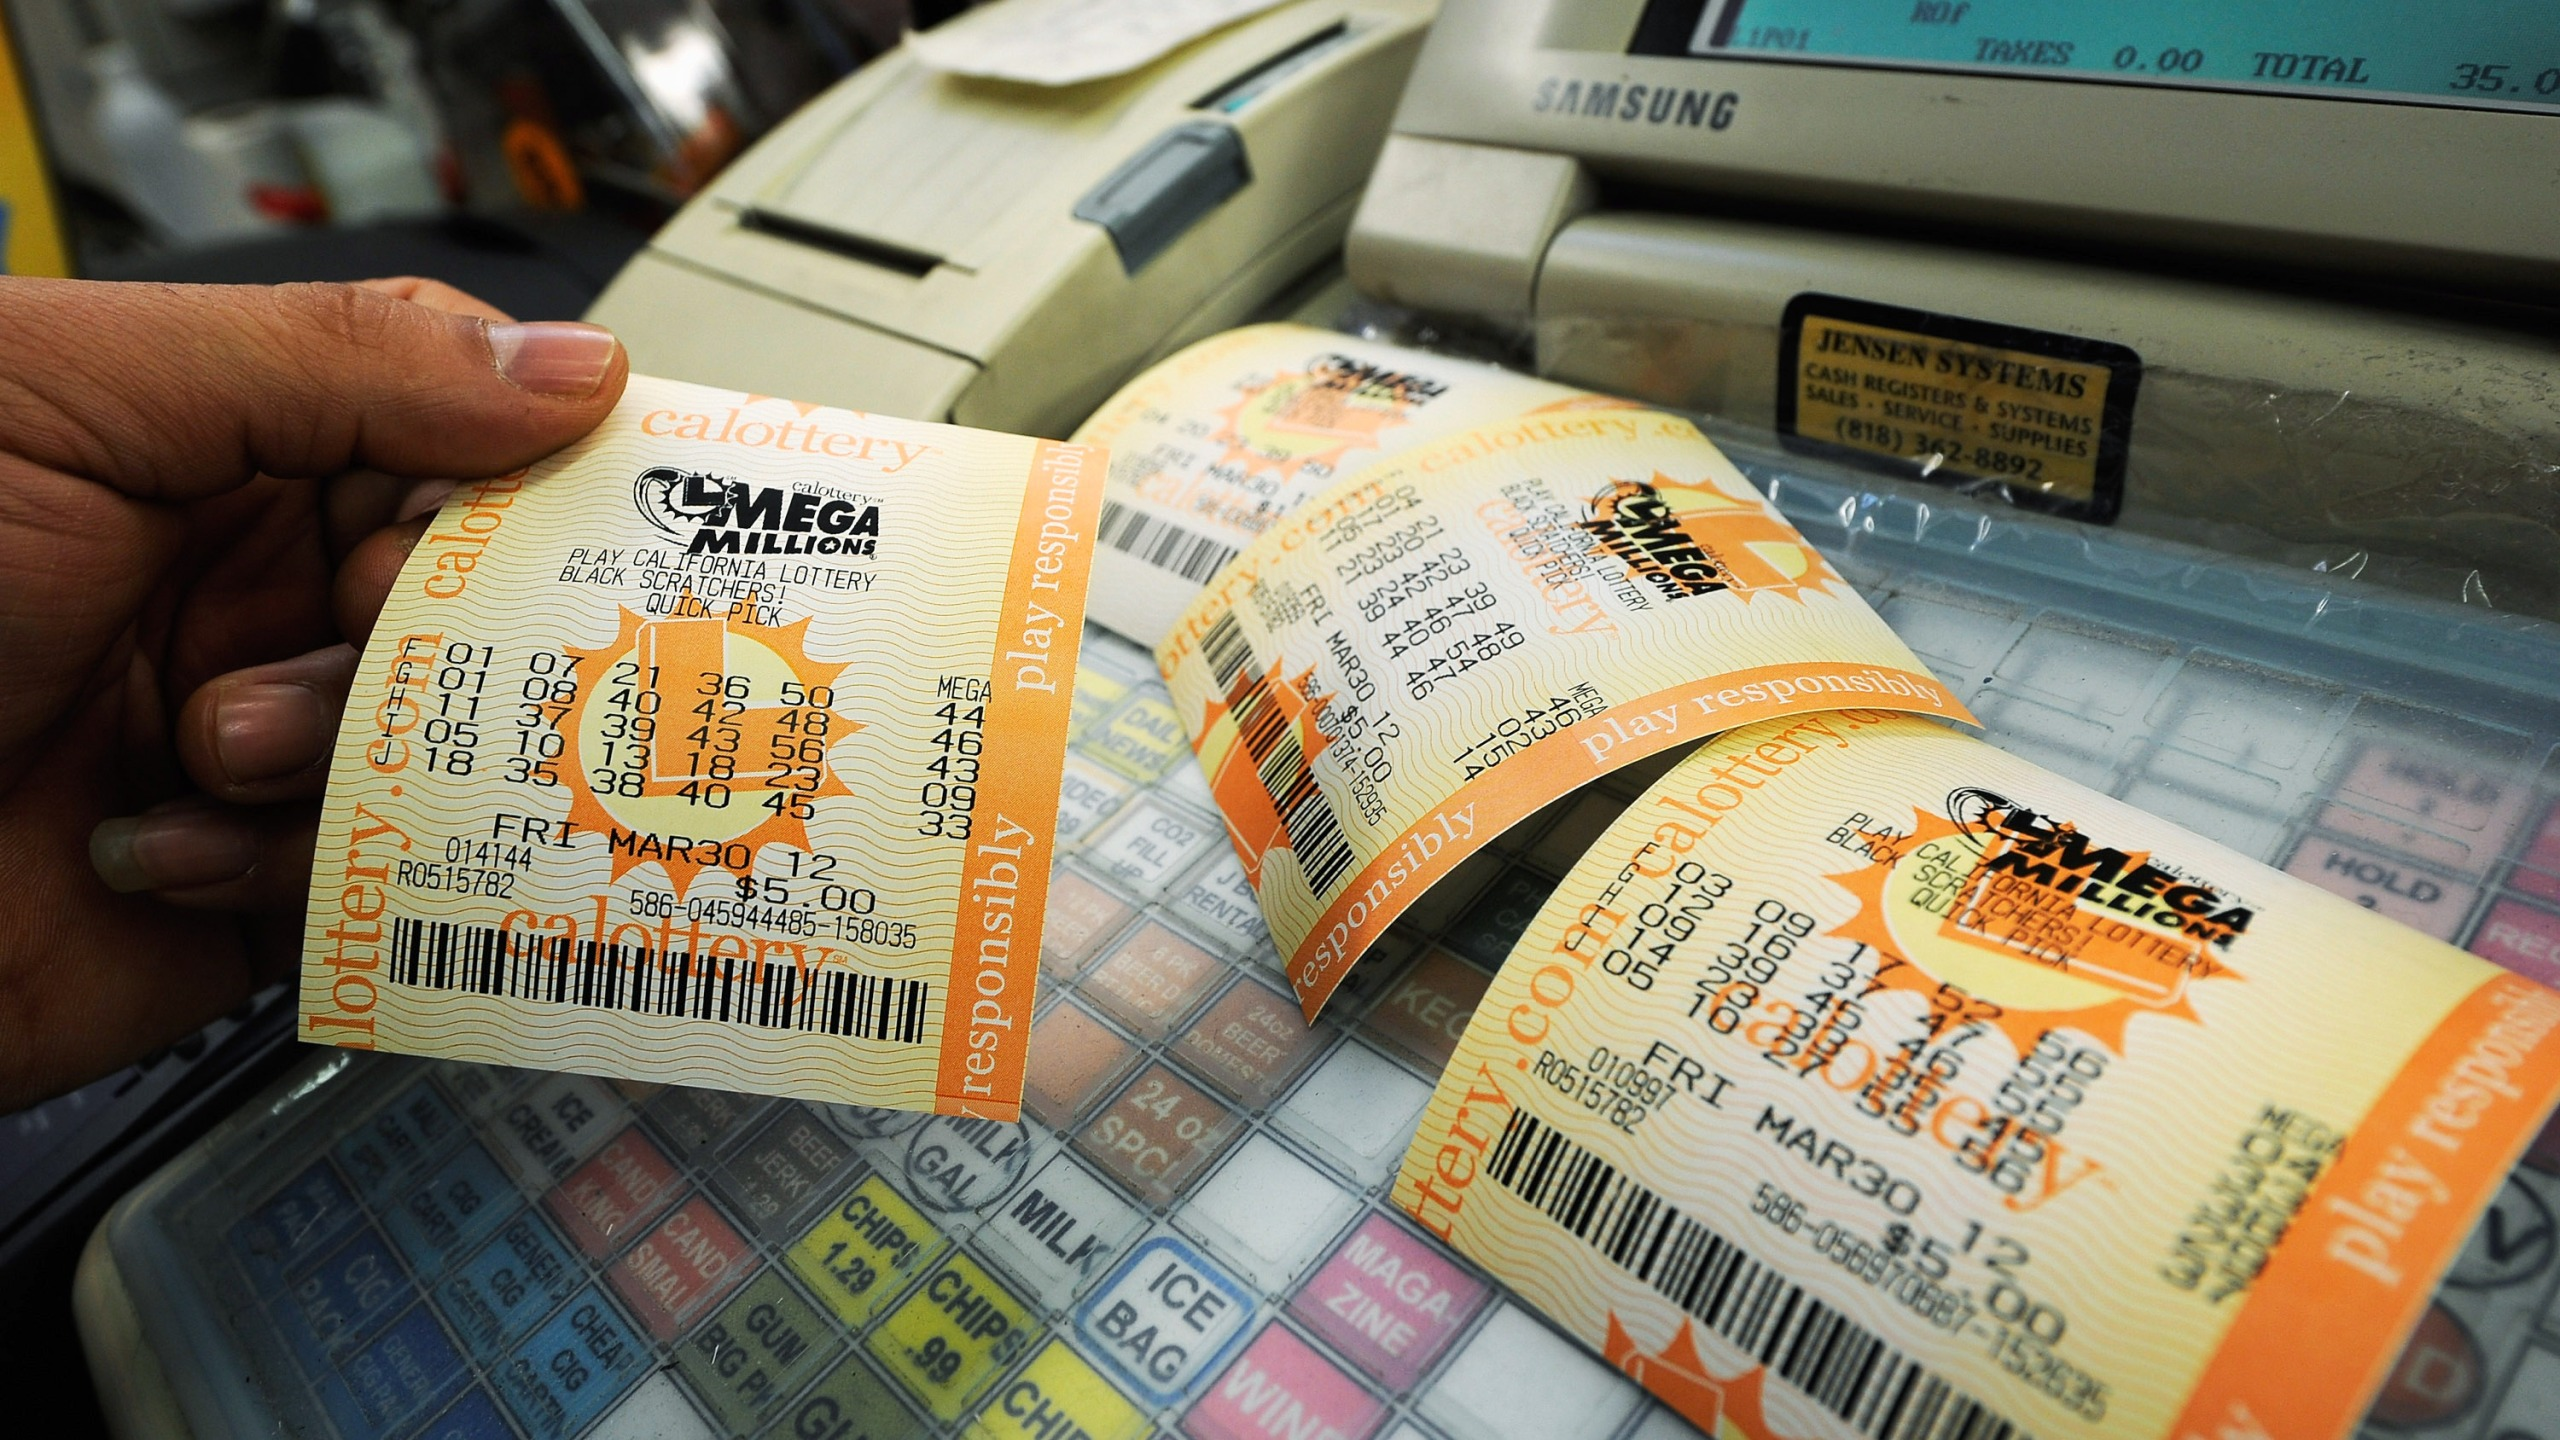 In this file photo, Mega Millions lottery tickets sit on a register at Liquorland on March 30, 2012 in Covina. (Kevork Djansezian/Getty Images)